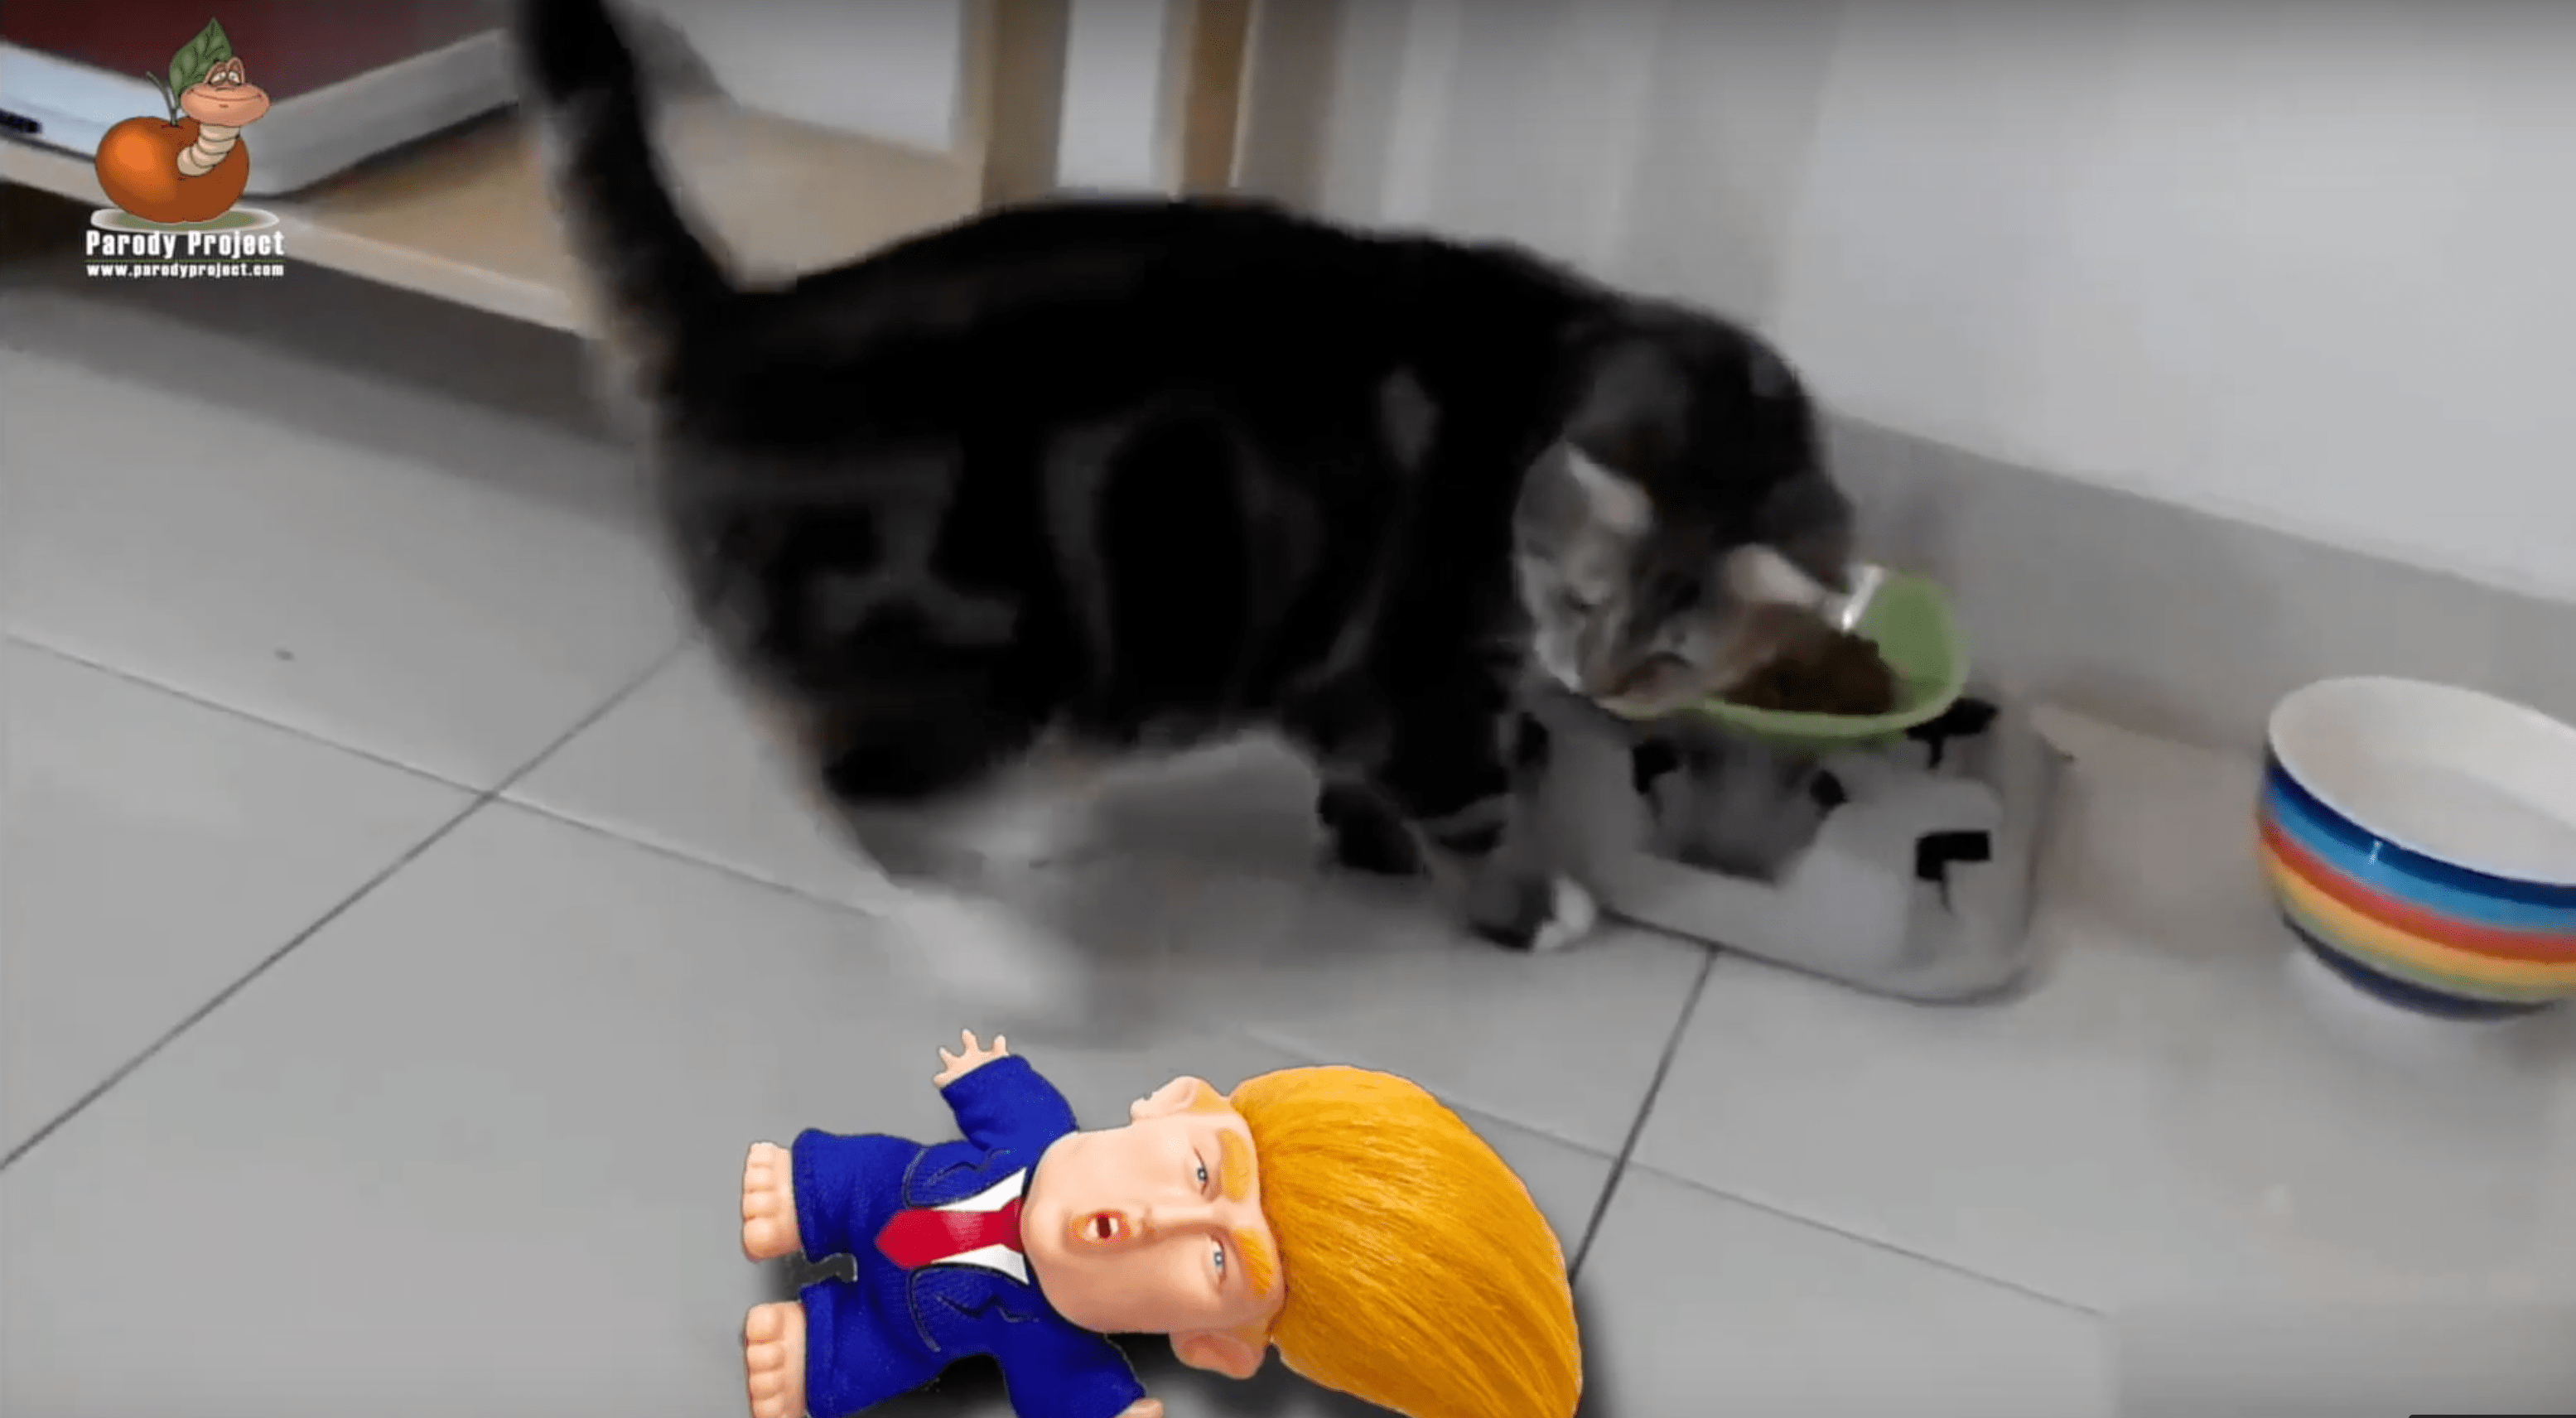 SOCIAL EXPERIMENT WITH CATS AND A TRUMP DOLL